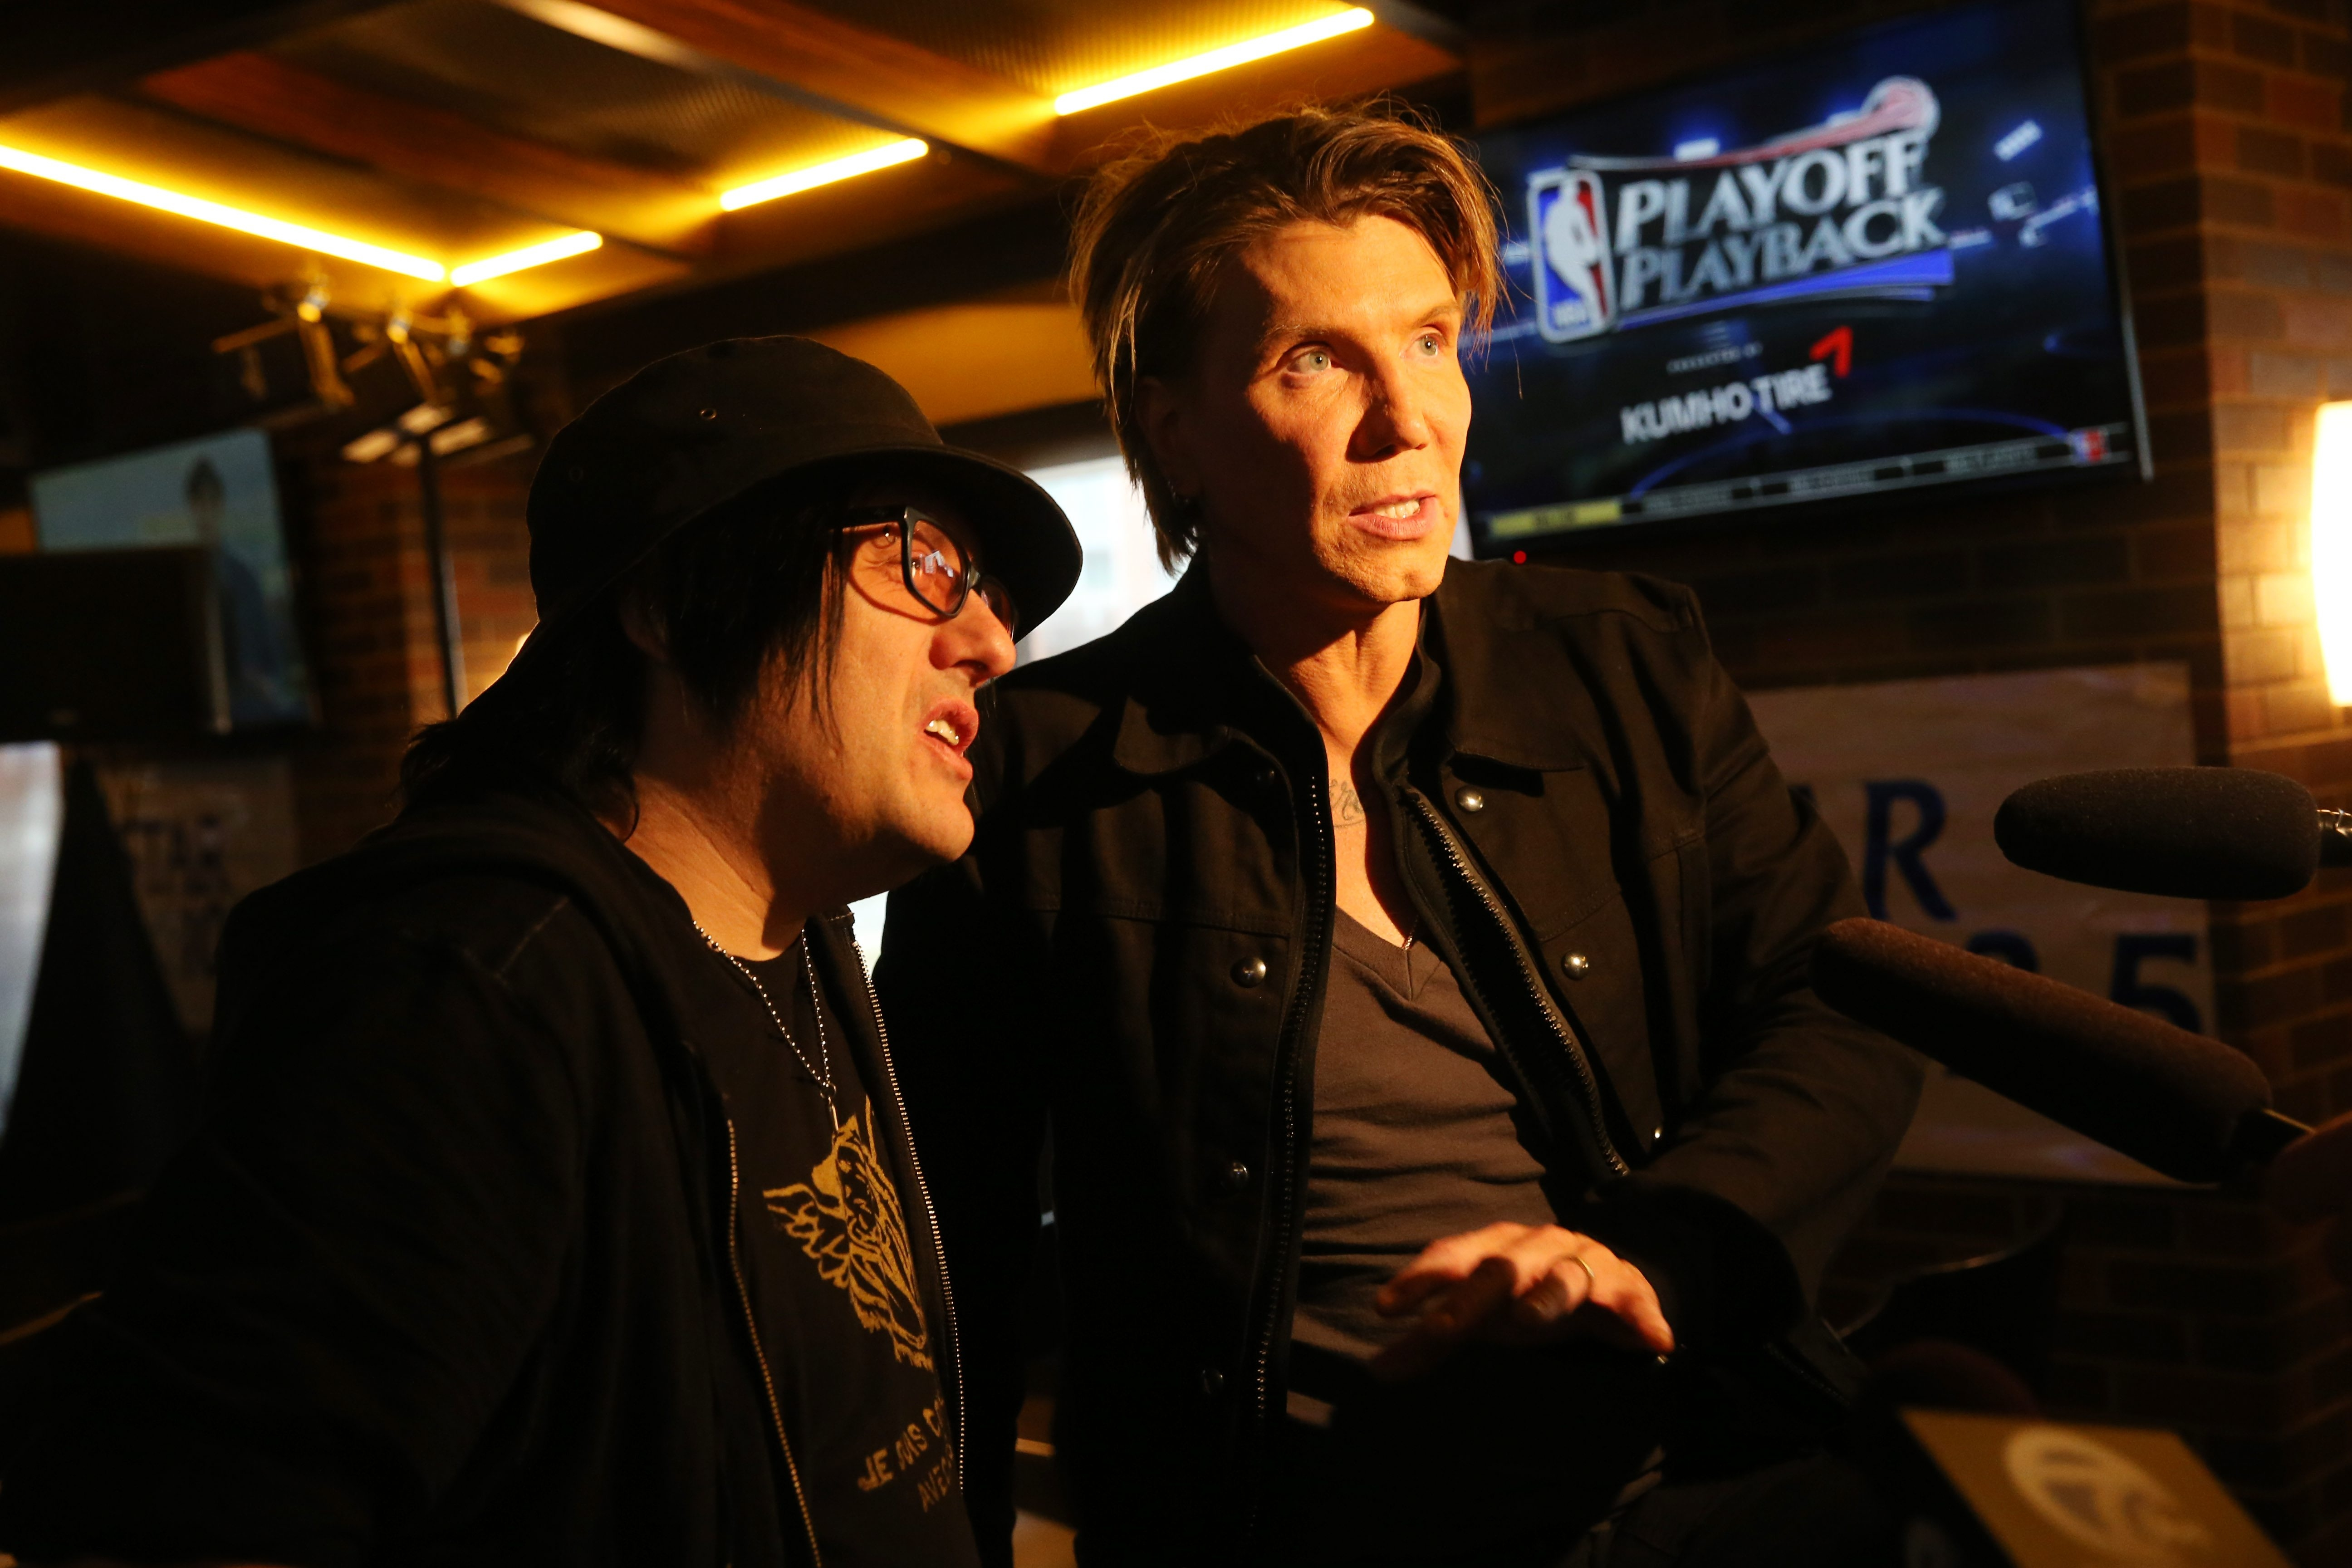 """Sharon Cantillon/Buffalo News   Good Goo Dolls perform a short acoustic show  as part of a record release at 716 Bar, Monday, May 9, 2016.  Before the show, they took time to talk to the media about a video of one the the songs on their new album""""Boxes."""" From left are Robby Tabac and John Rzeznik.  ()"""